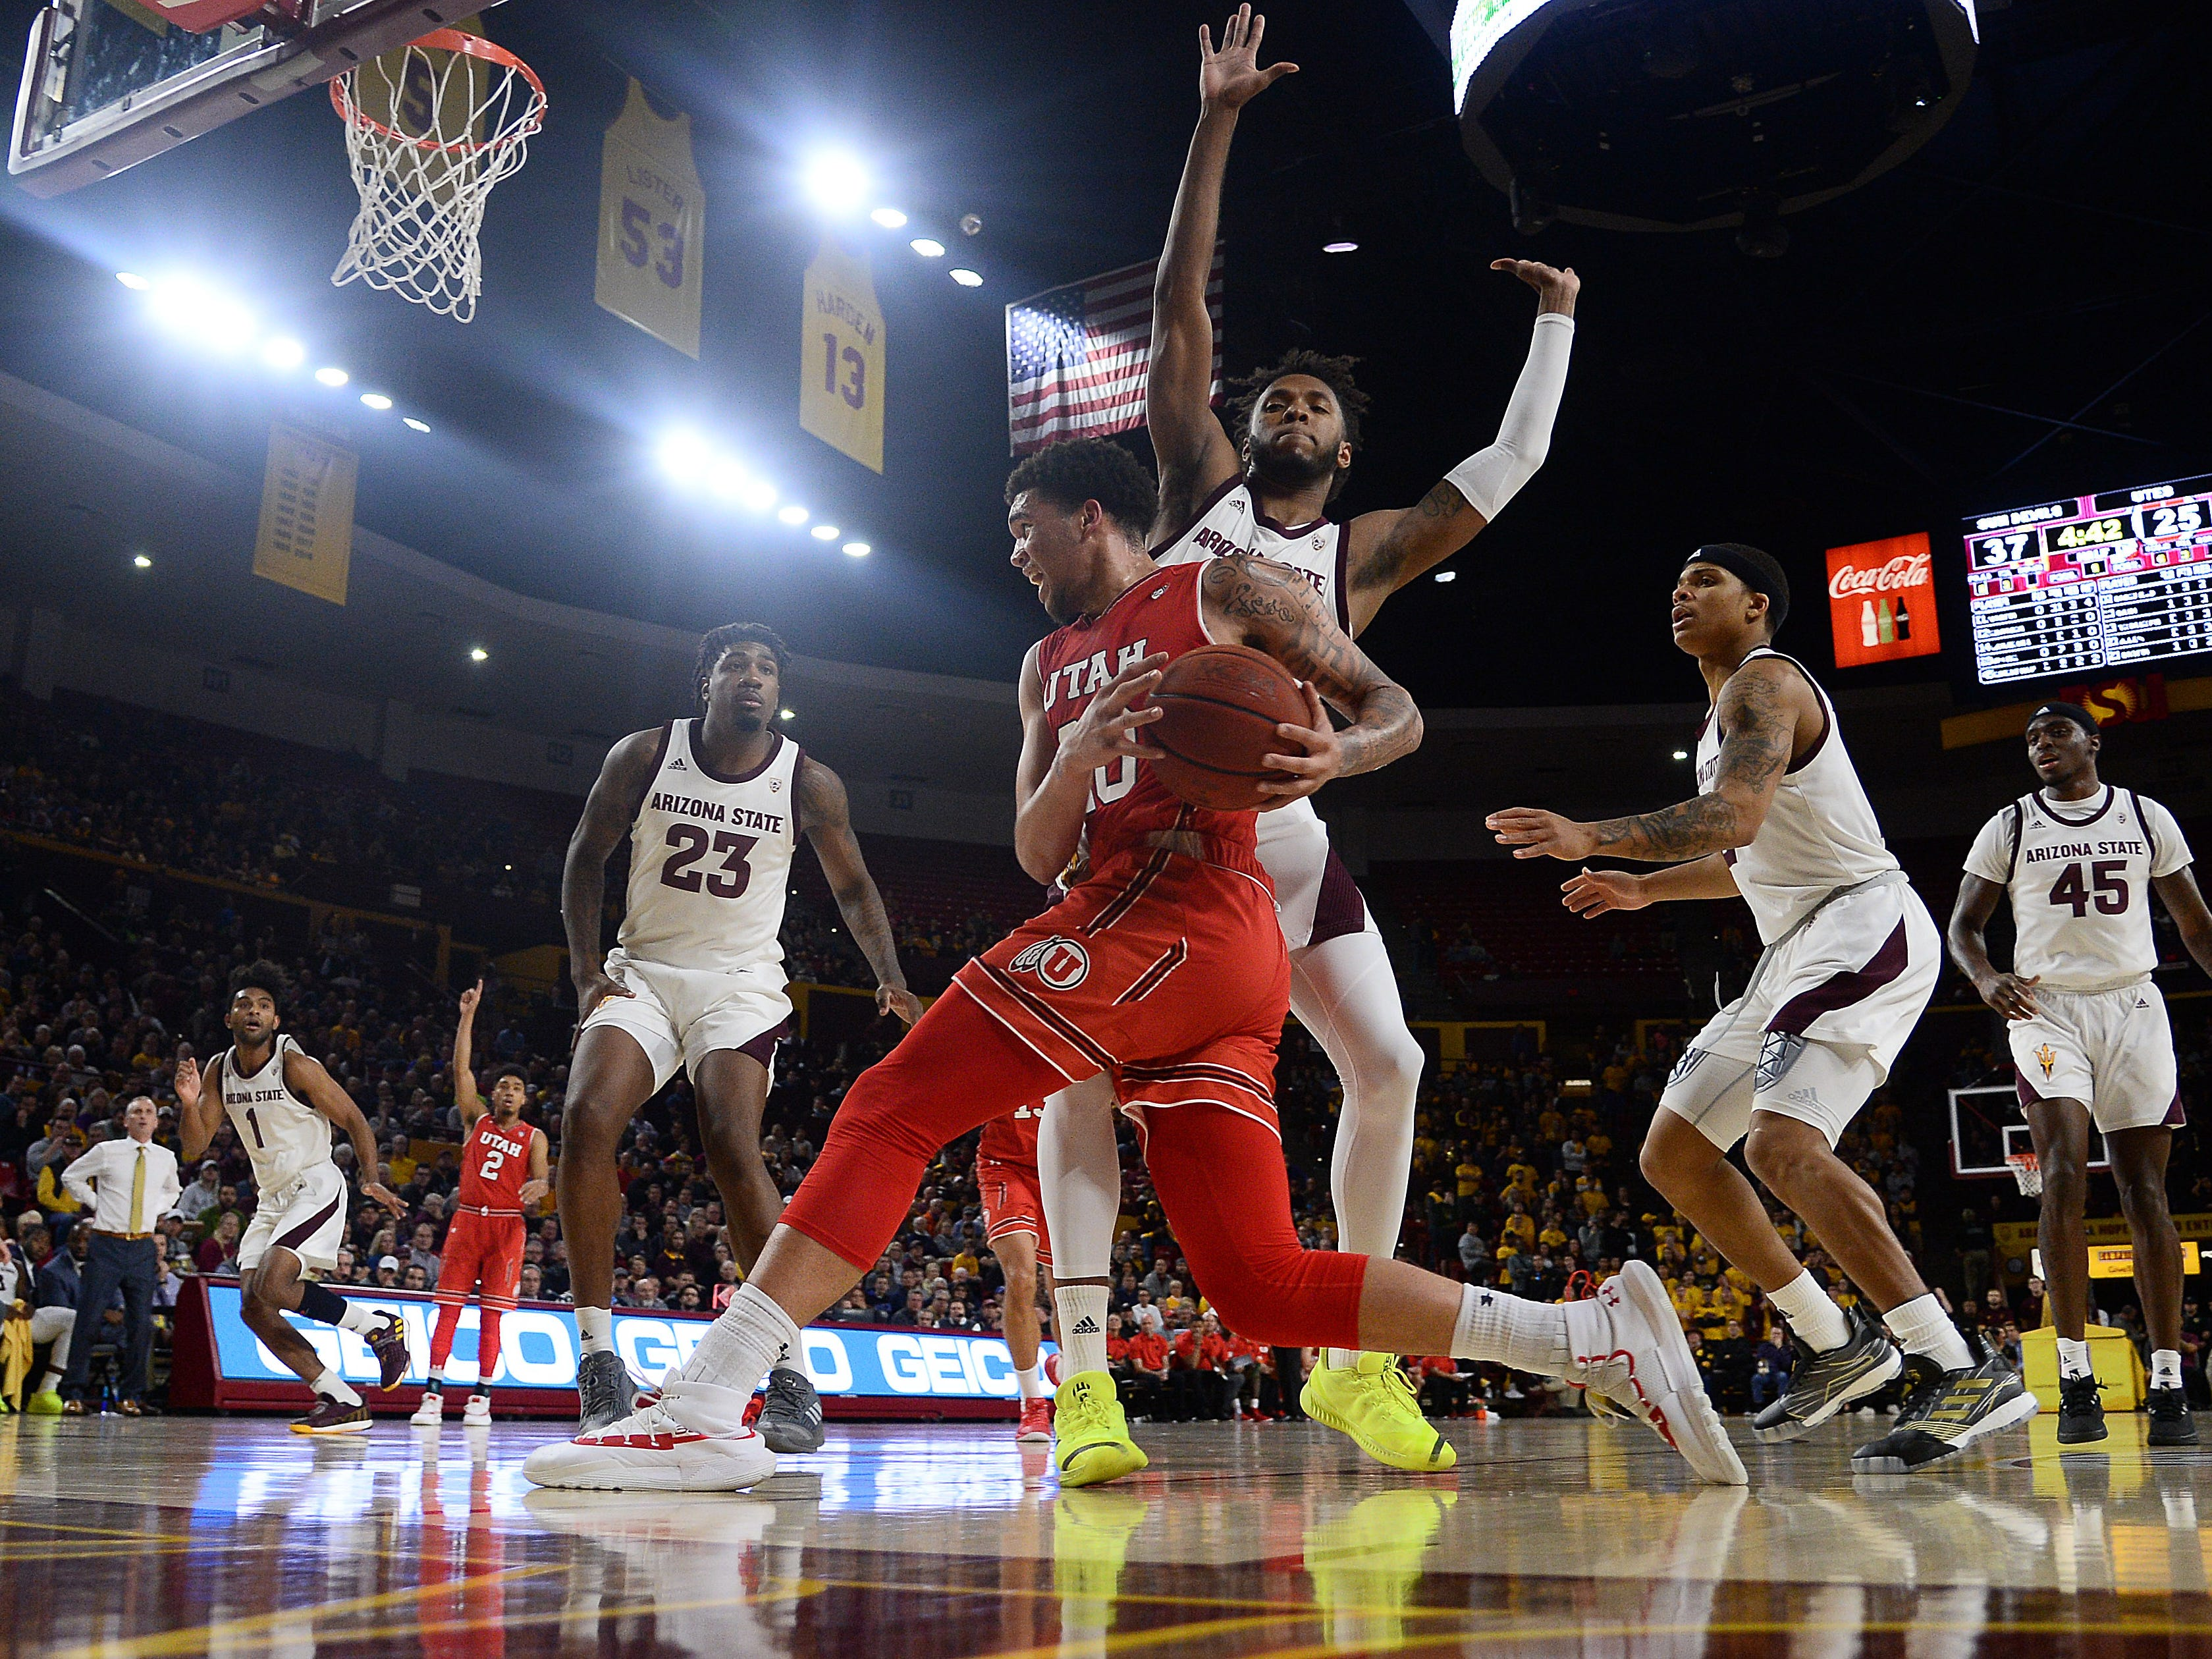 Jan 3, 2019; Tempe, AZ, USA; Utah Utes forward Timmy Allen (20) drives against Arizona State Sun Devils forward Kimani Lawrence (14) during the first half at Wells Fargo Arena (AZ). Mandatory Credit: Joe Camporeale-USA TODAY Sports